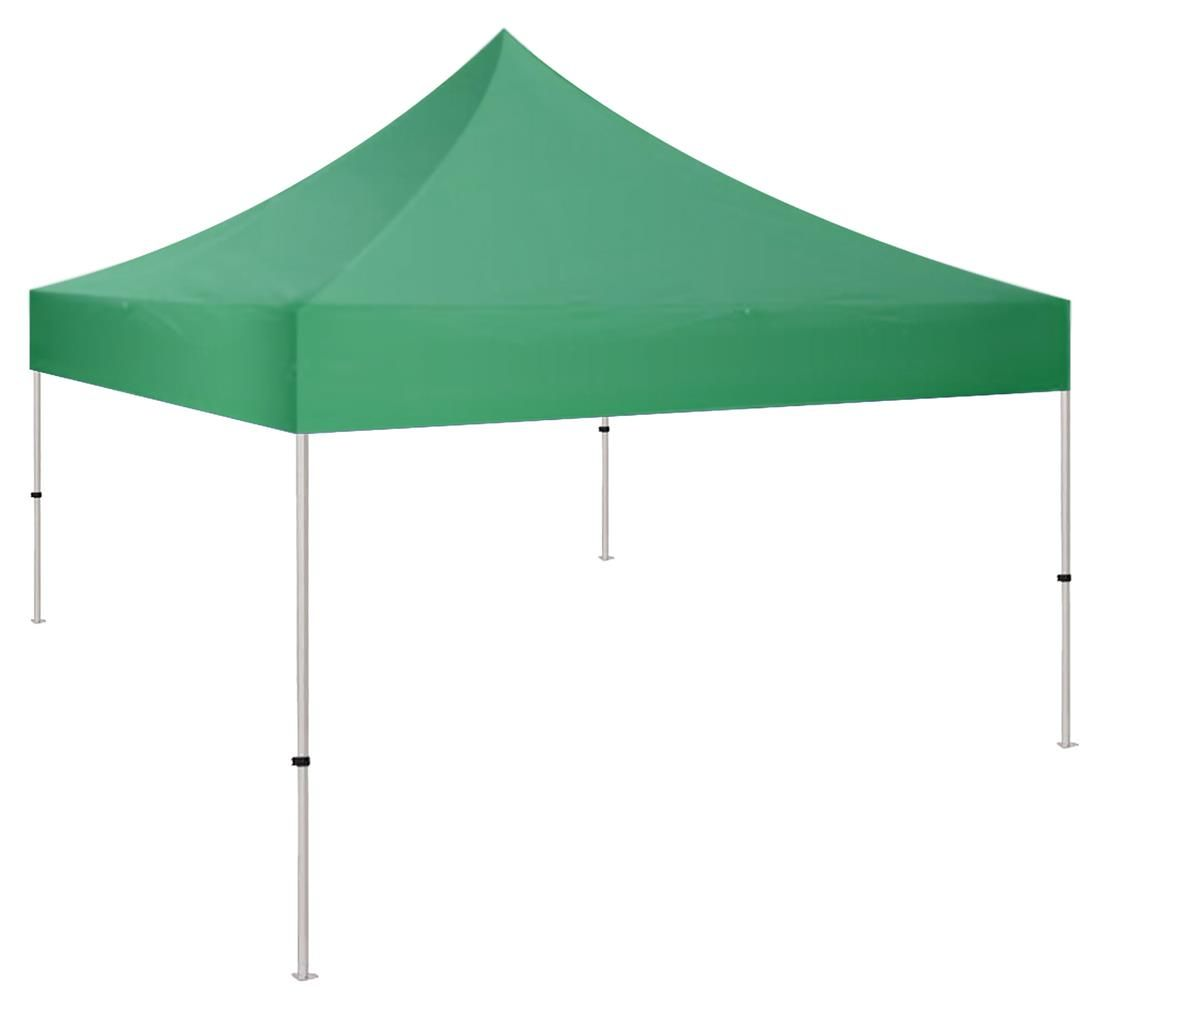 10x10 Pop Up Canopy Tent Available In Five Colors In 2020 Canopy Tent Pop Up Canopy Tent Indoor Canopy